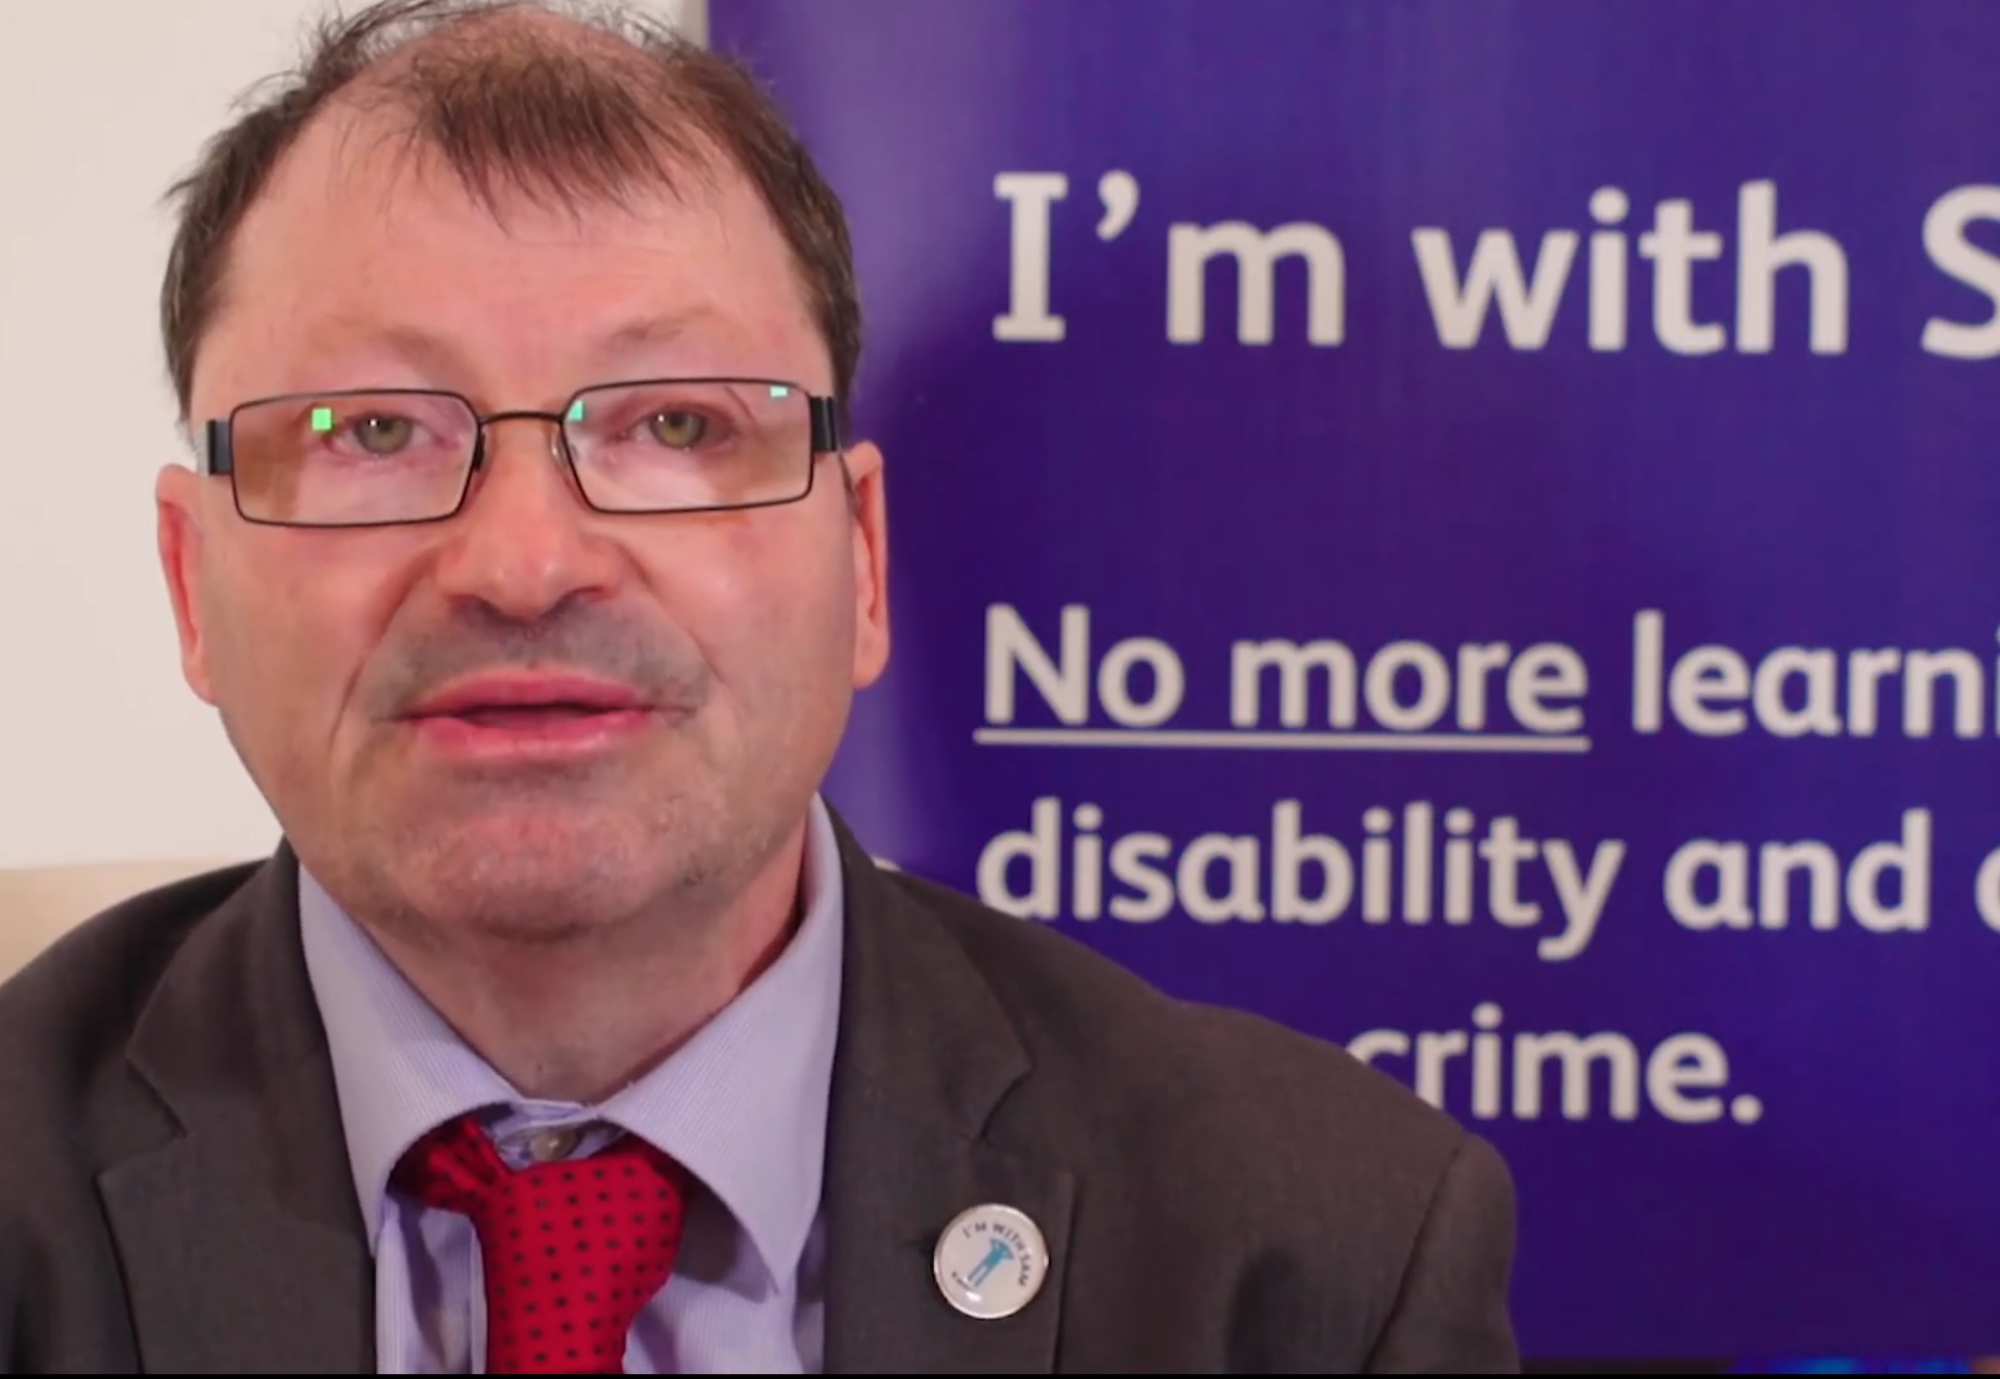 A man in a suit and tie speaks directly into camera. Behind him is an I'm With Sam campaign display against learning disability hate crime.